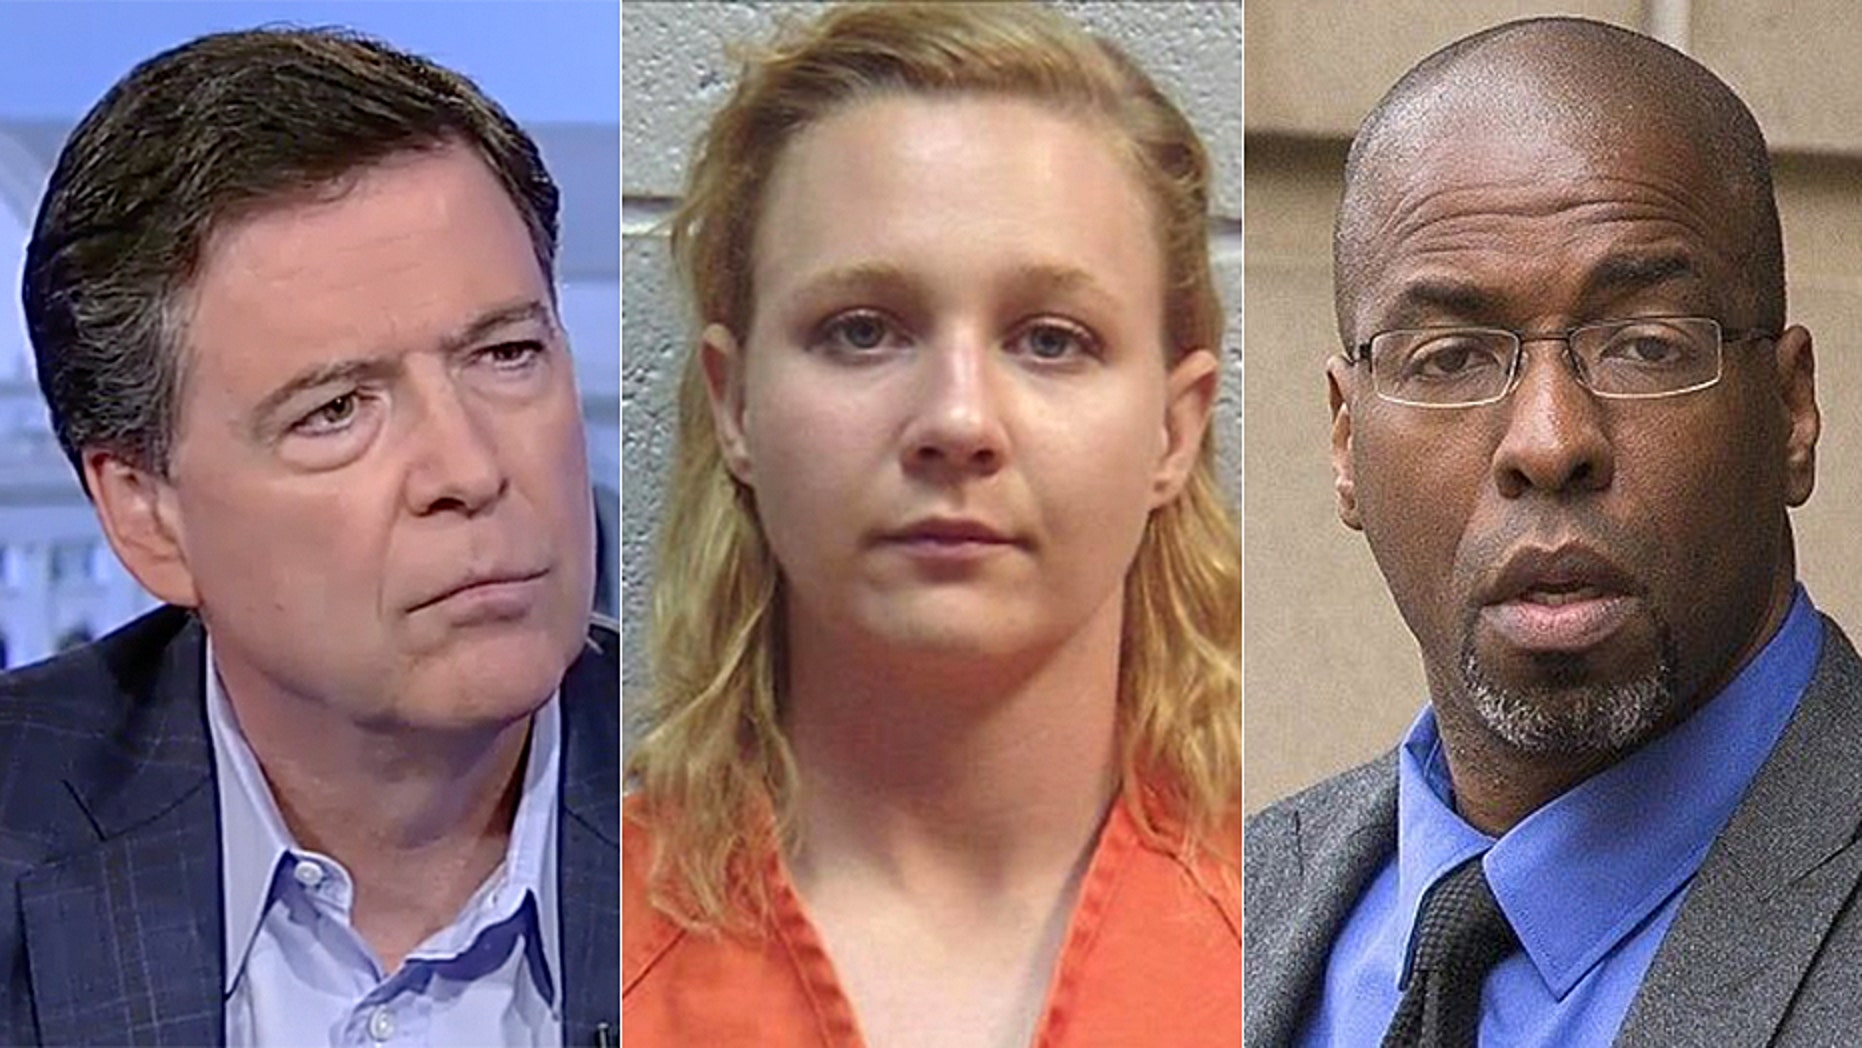 Former FBI director James Comey, former federal contractor Reality Winner and former CIA officer Jeffrey Sterling.